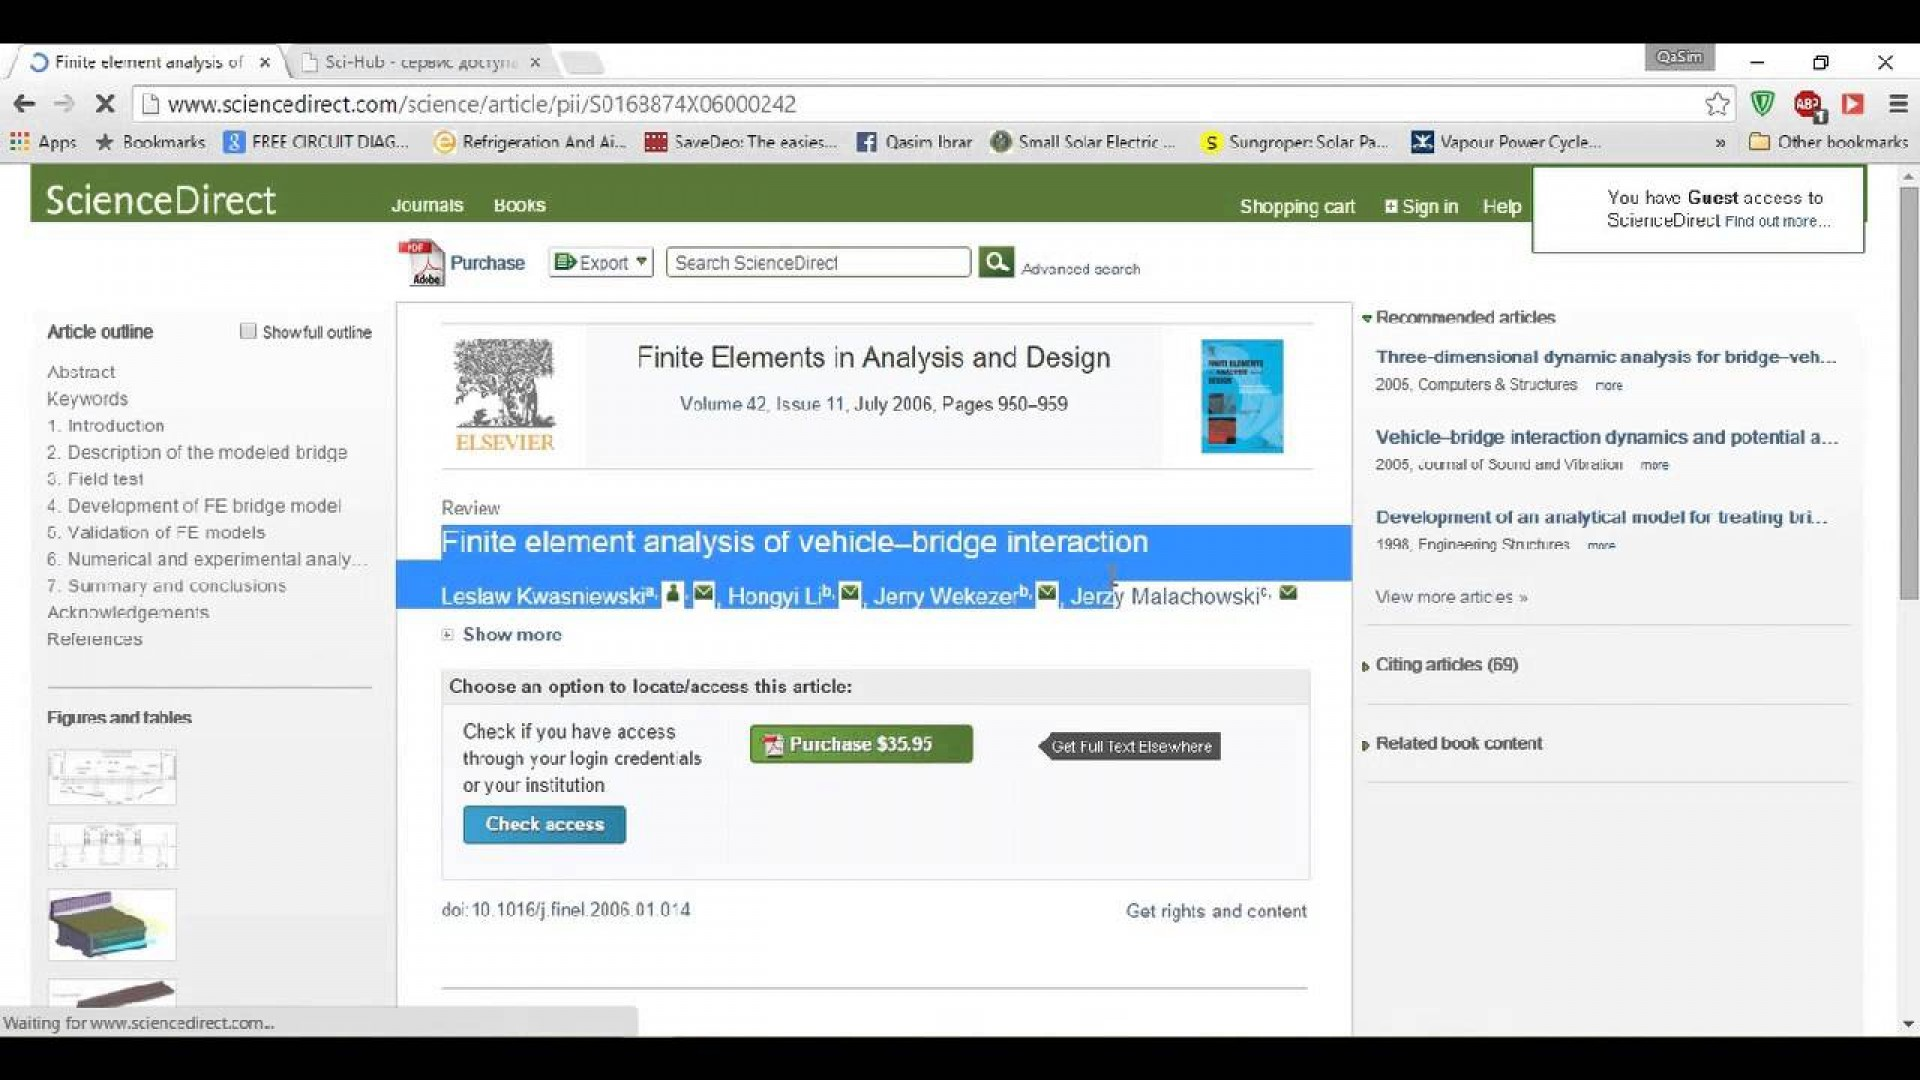 011 Full Researchs For Free Maxresdefault Impressive Research Papers Paper Samples Download 1920